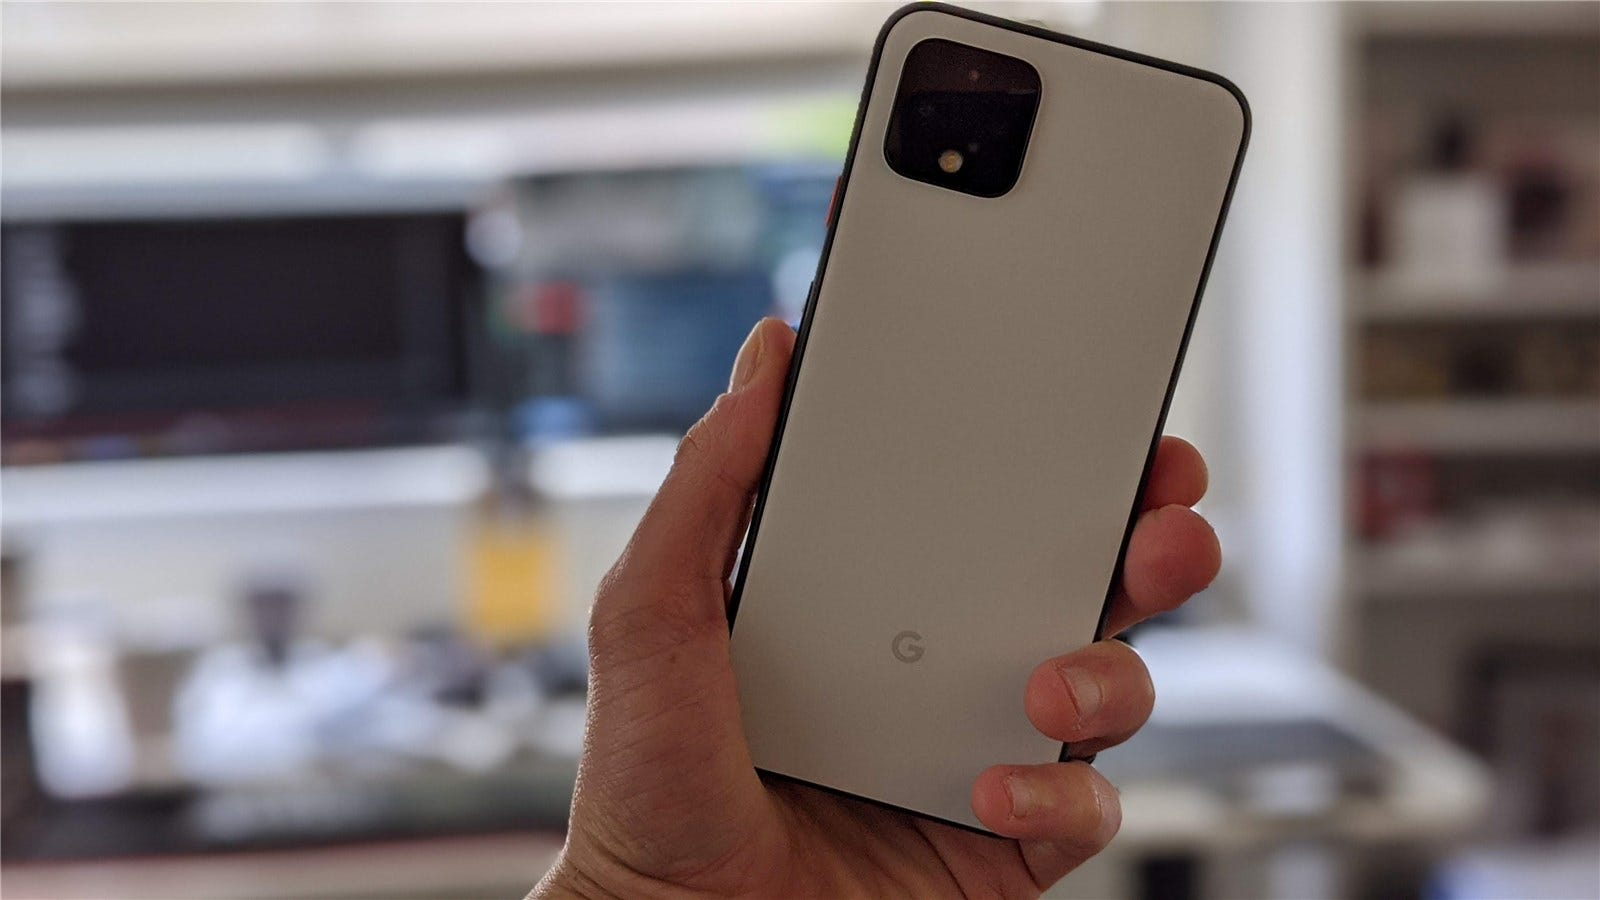 Pixel 4 in white